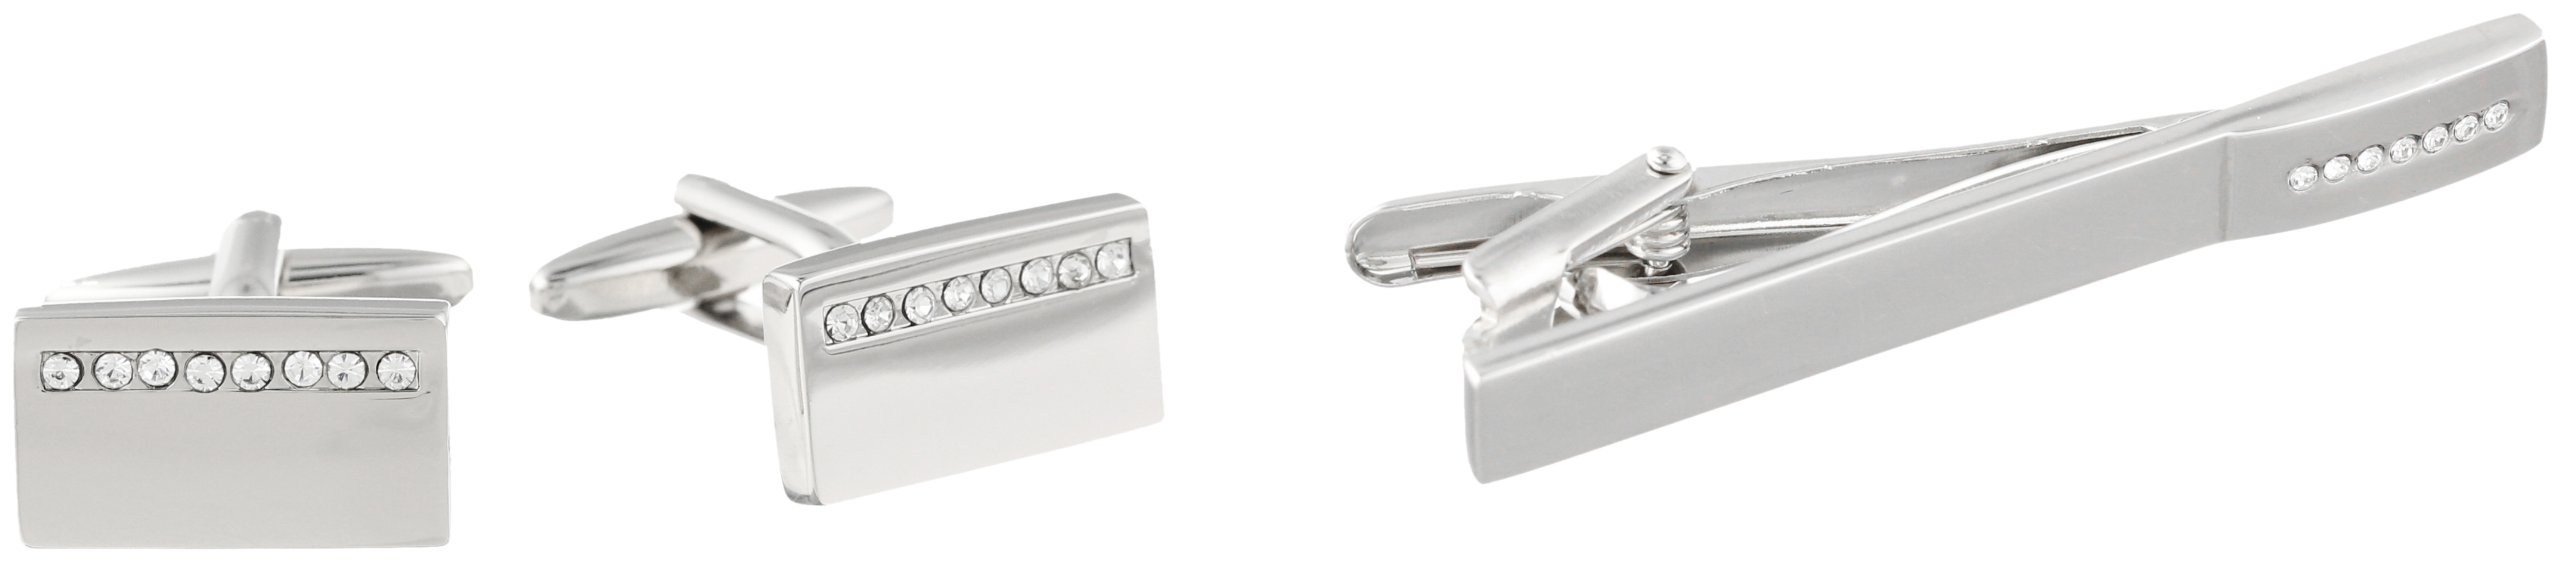 Stacy Adams Men's Polished Cuff Link and Tie Bar With Crystal Stipe Set, Silver, One Size